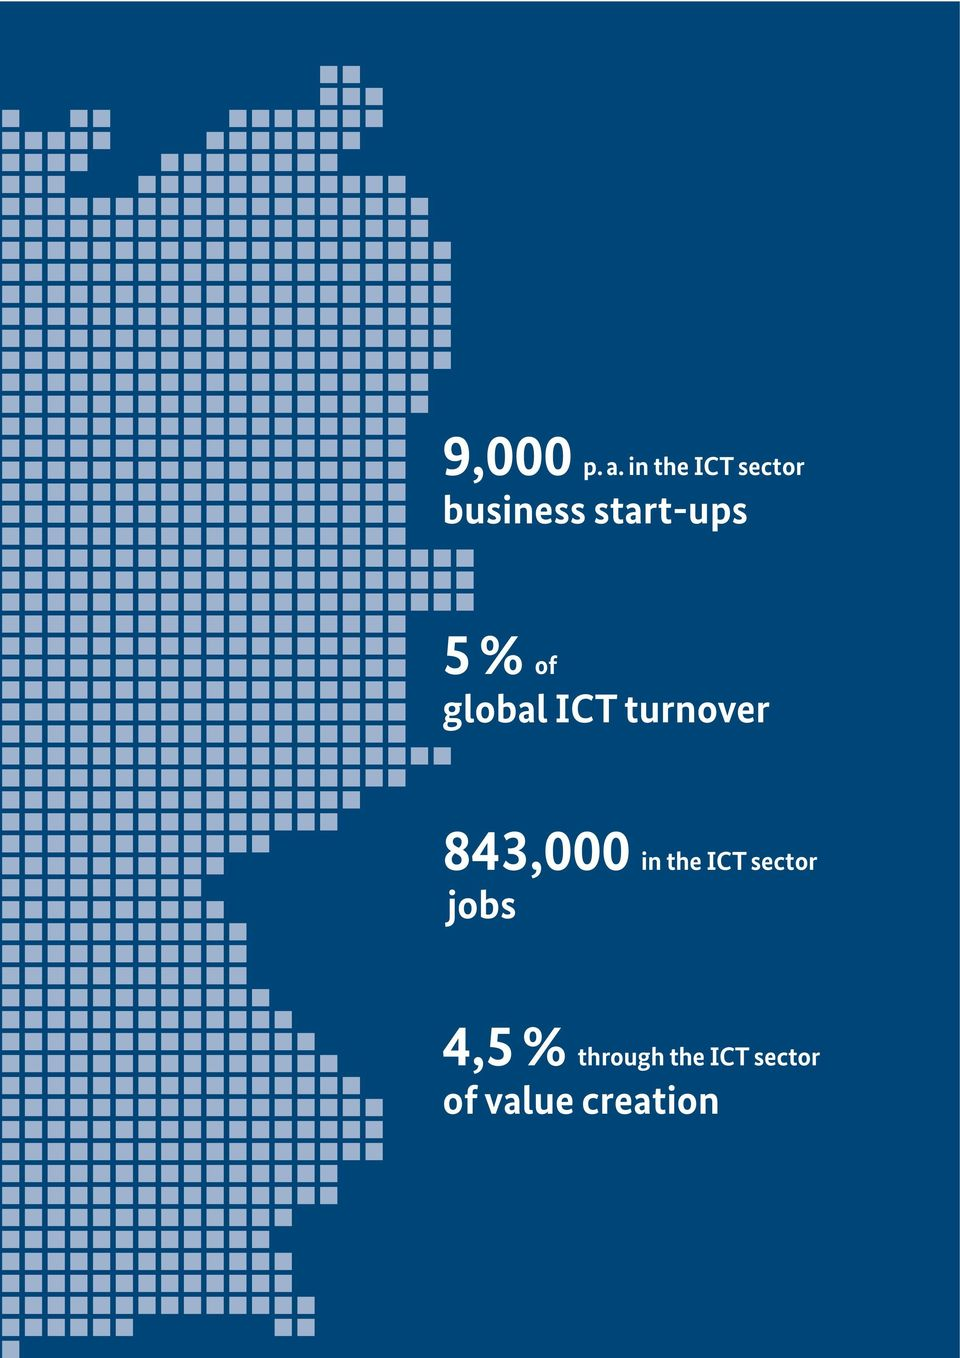 5% of global ICT turnover 843,000 in